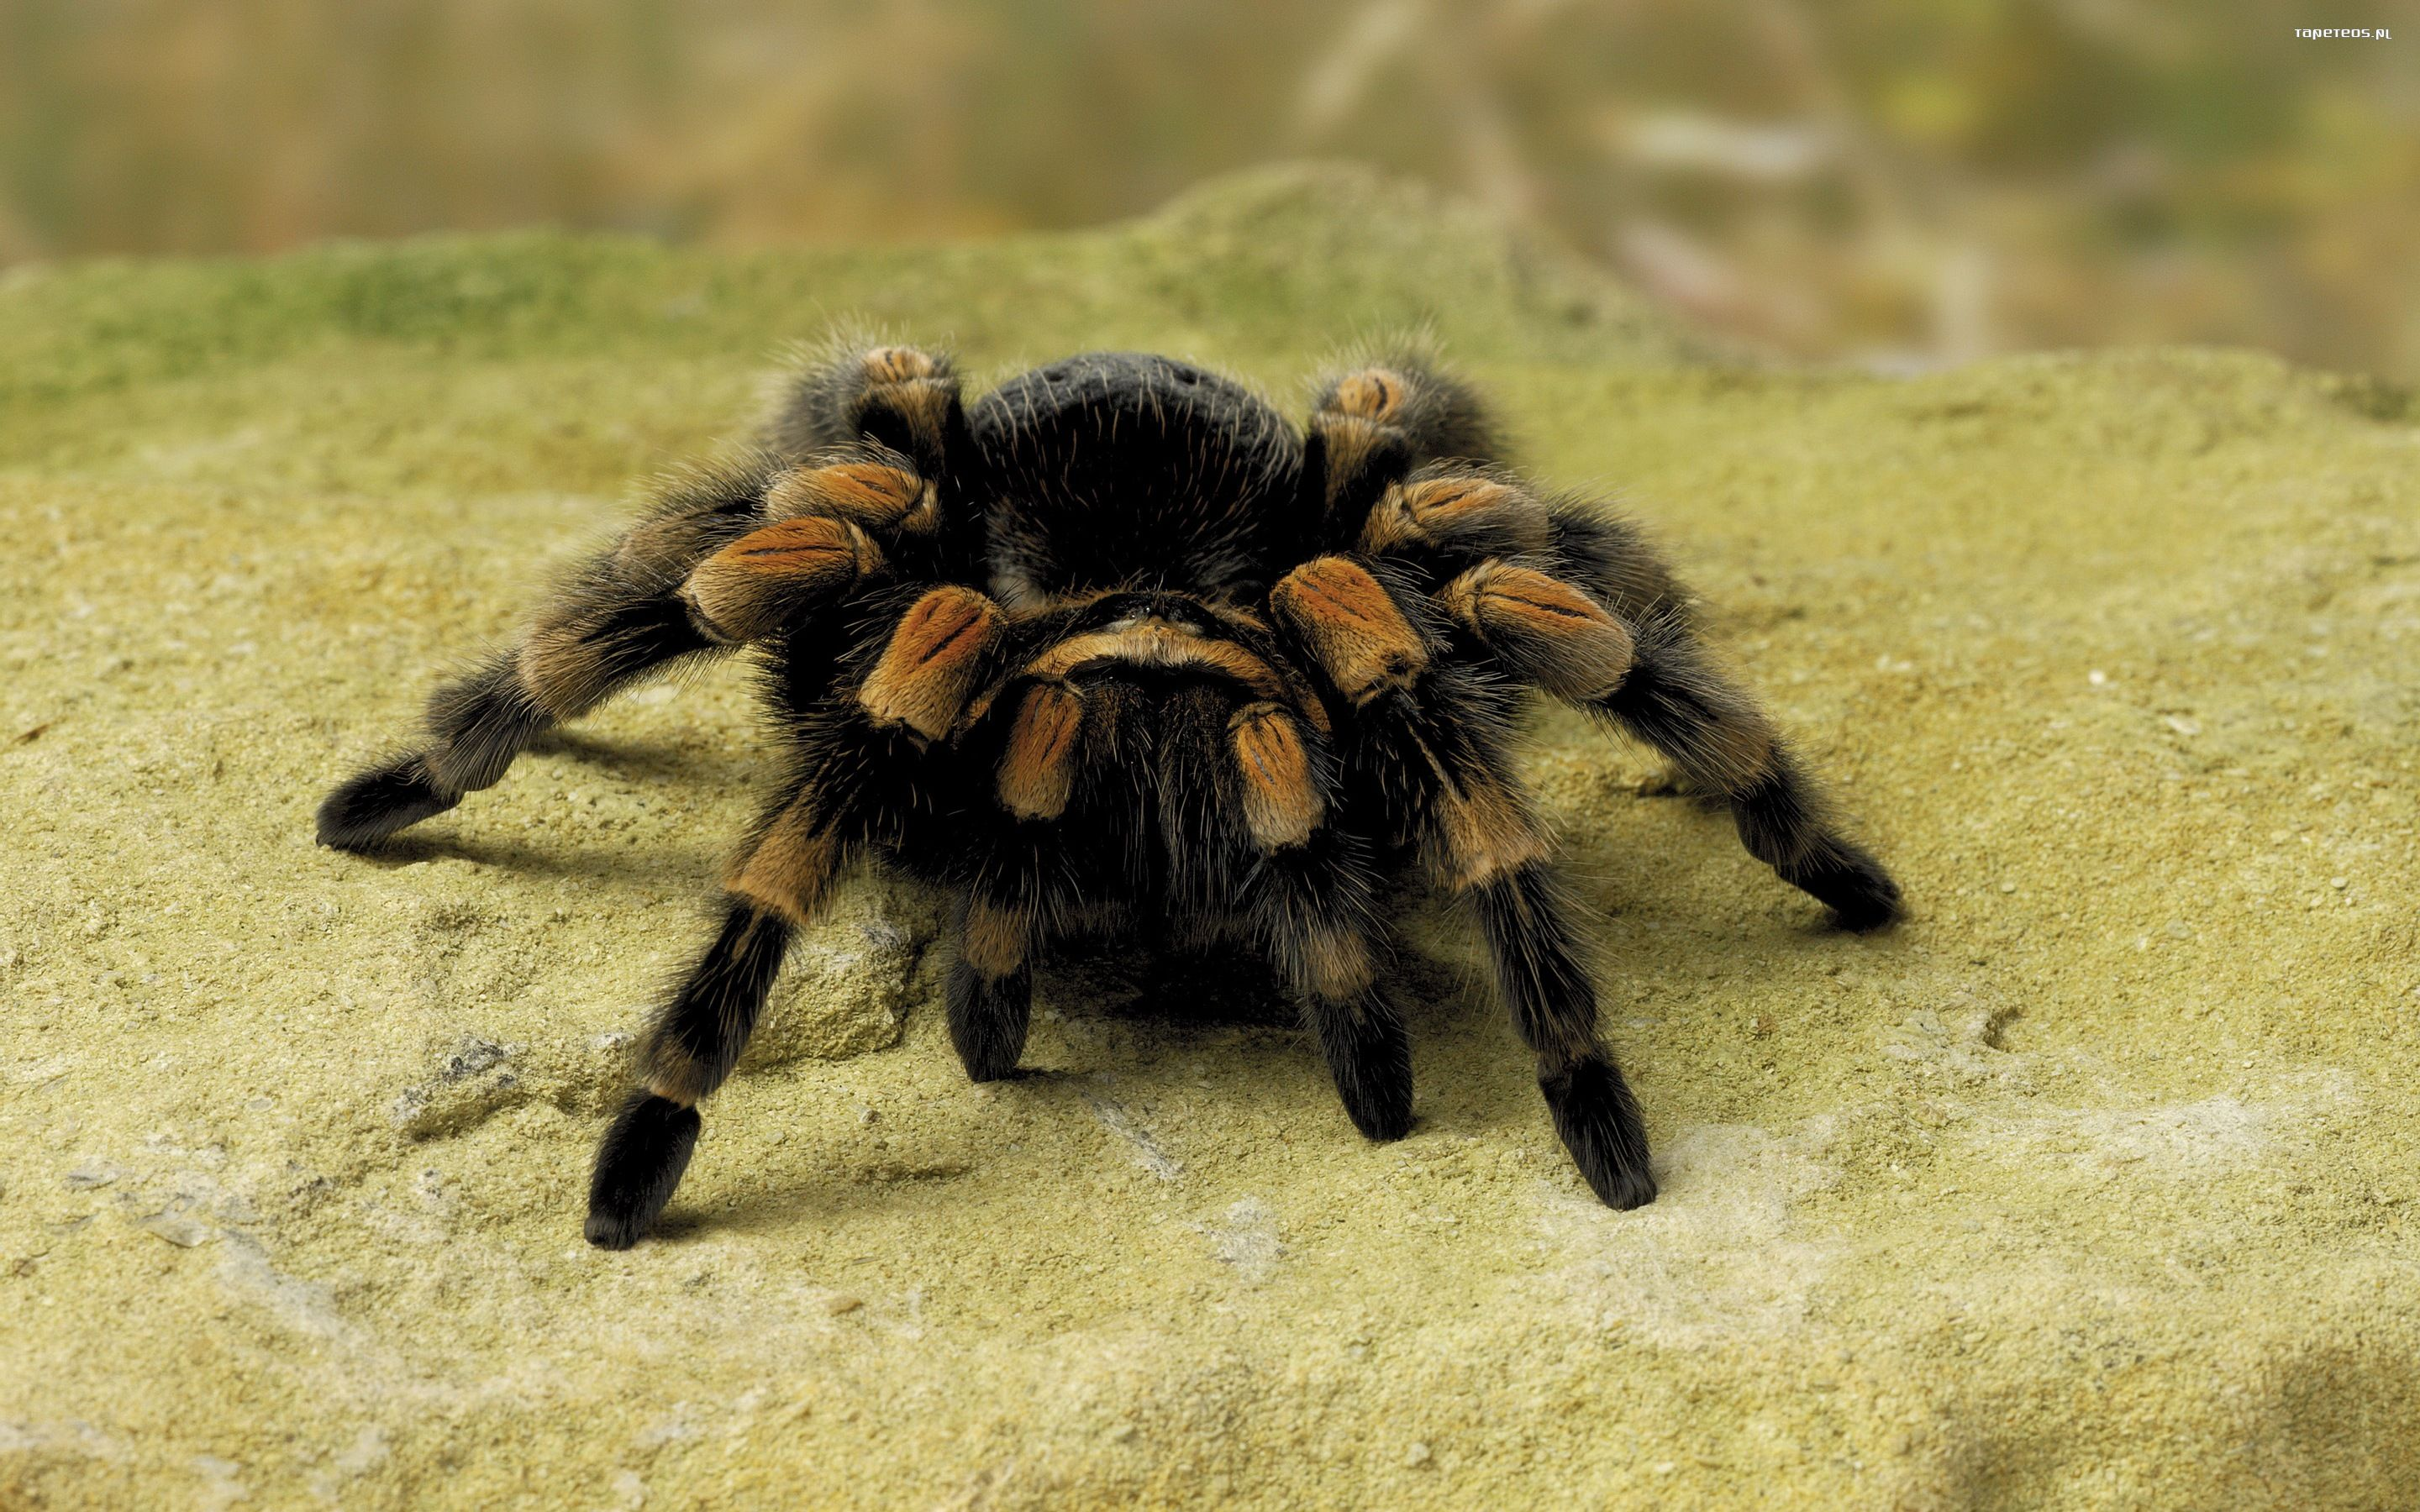 Zwierzeta 2880x1800 098 pajak tapety na pulpit - Spider hd images download ...